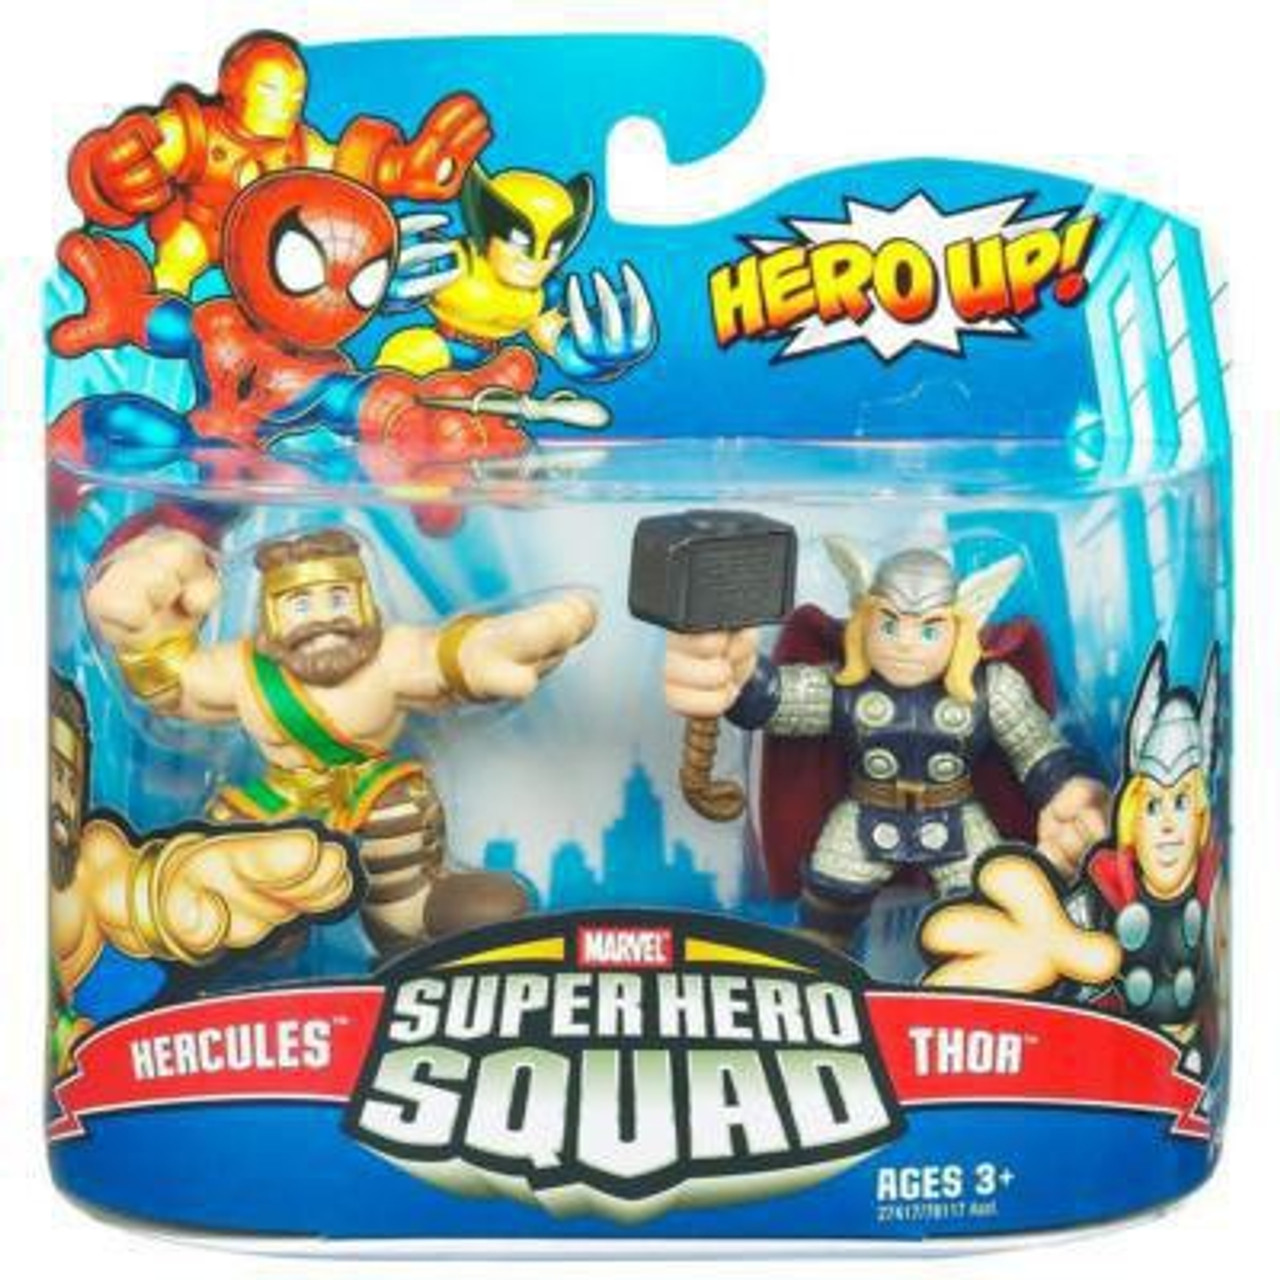 Hasbro MARVEL SUPER HERO SQUAD RED SKULL Blue Cube Collection Figure Toy